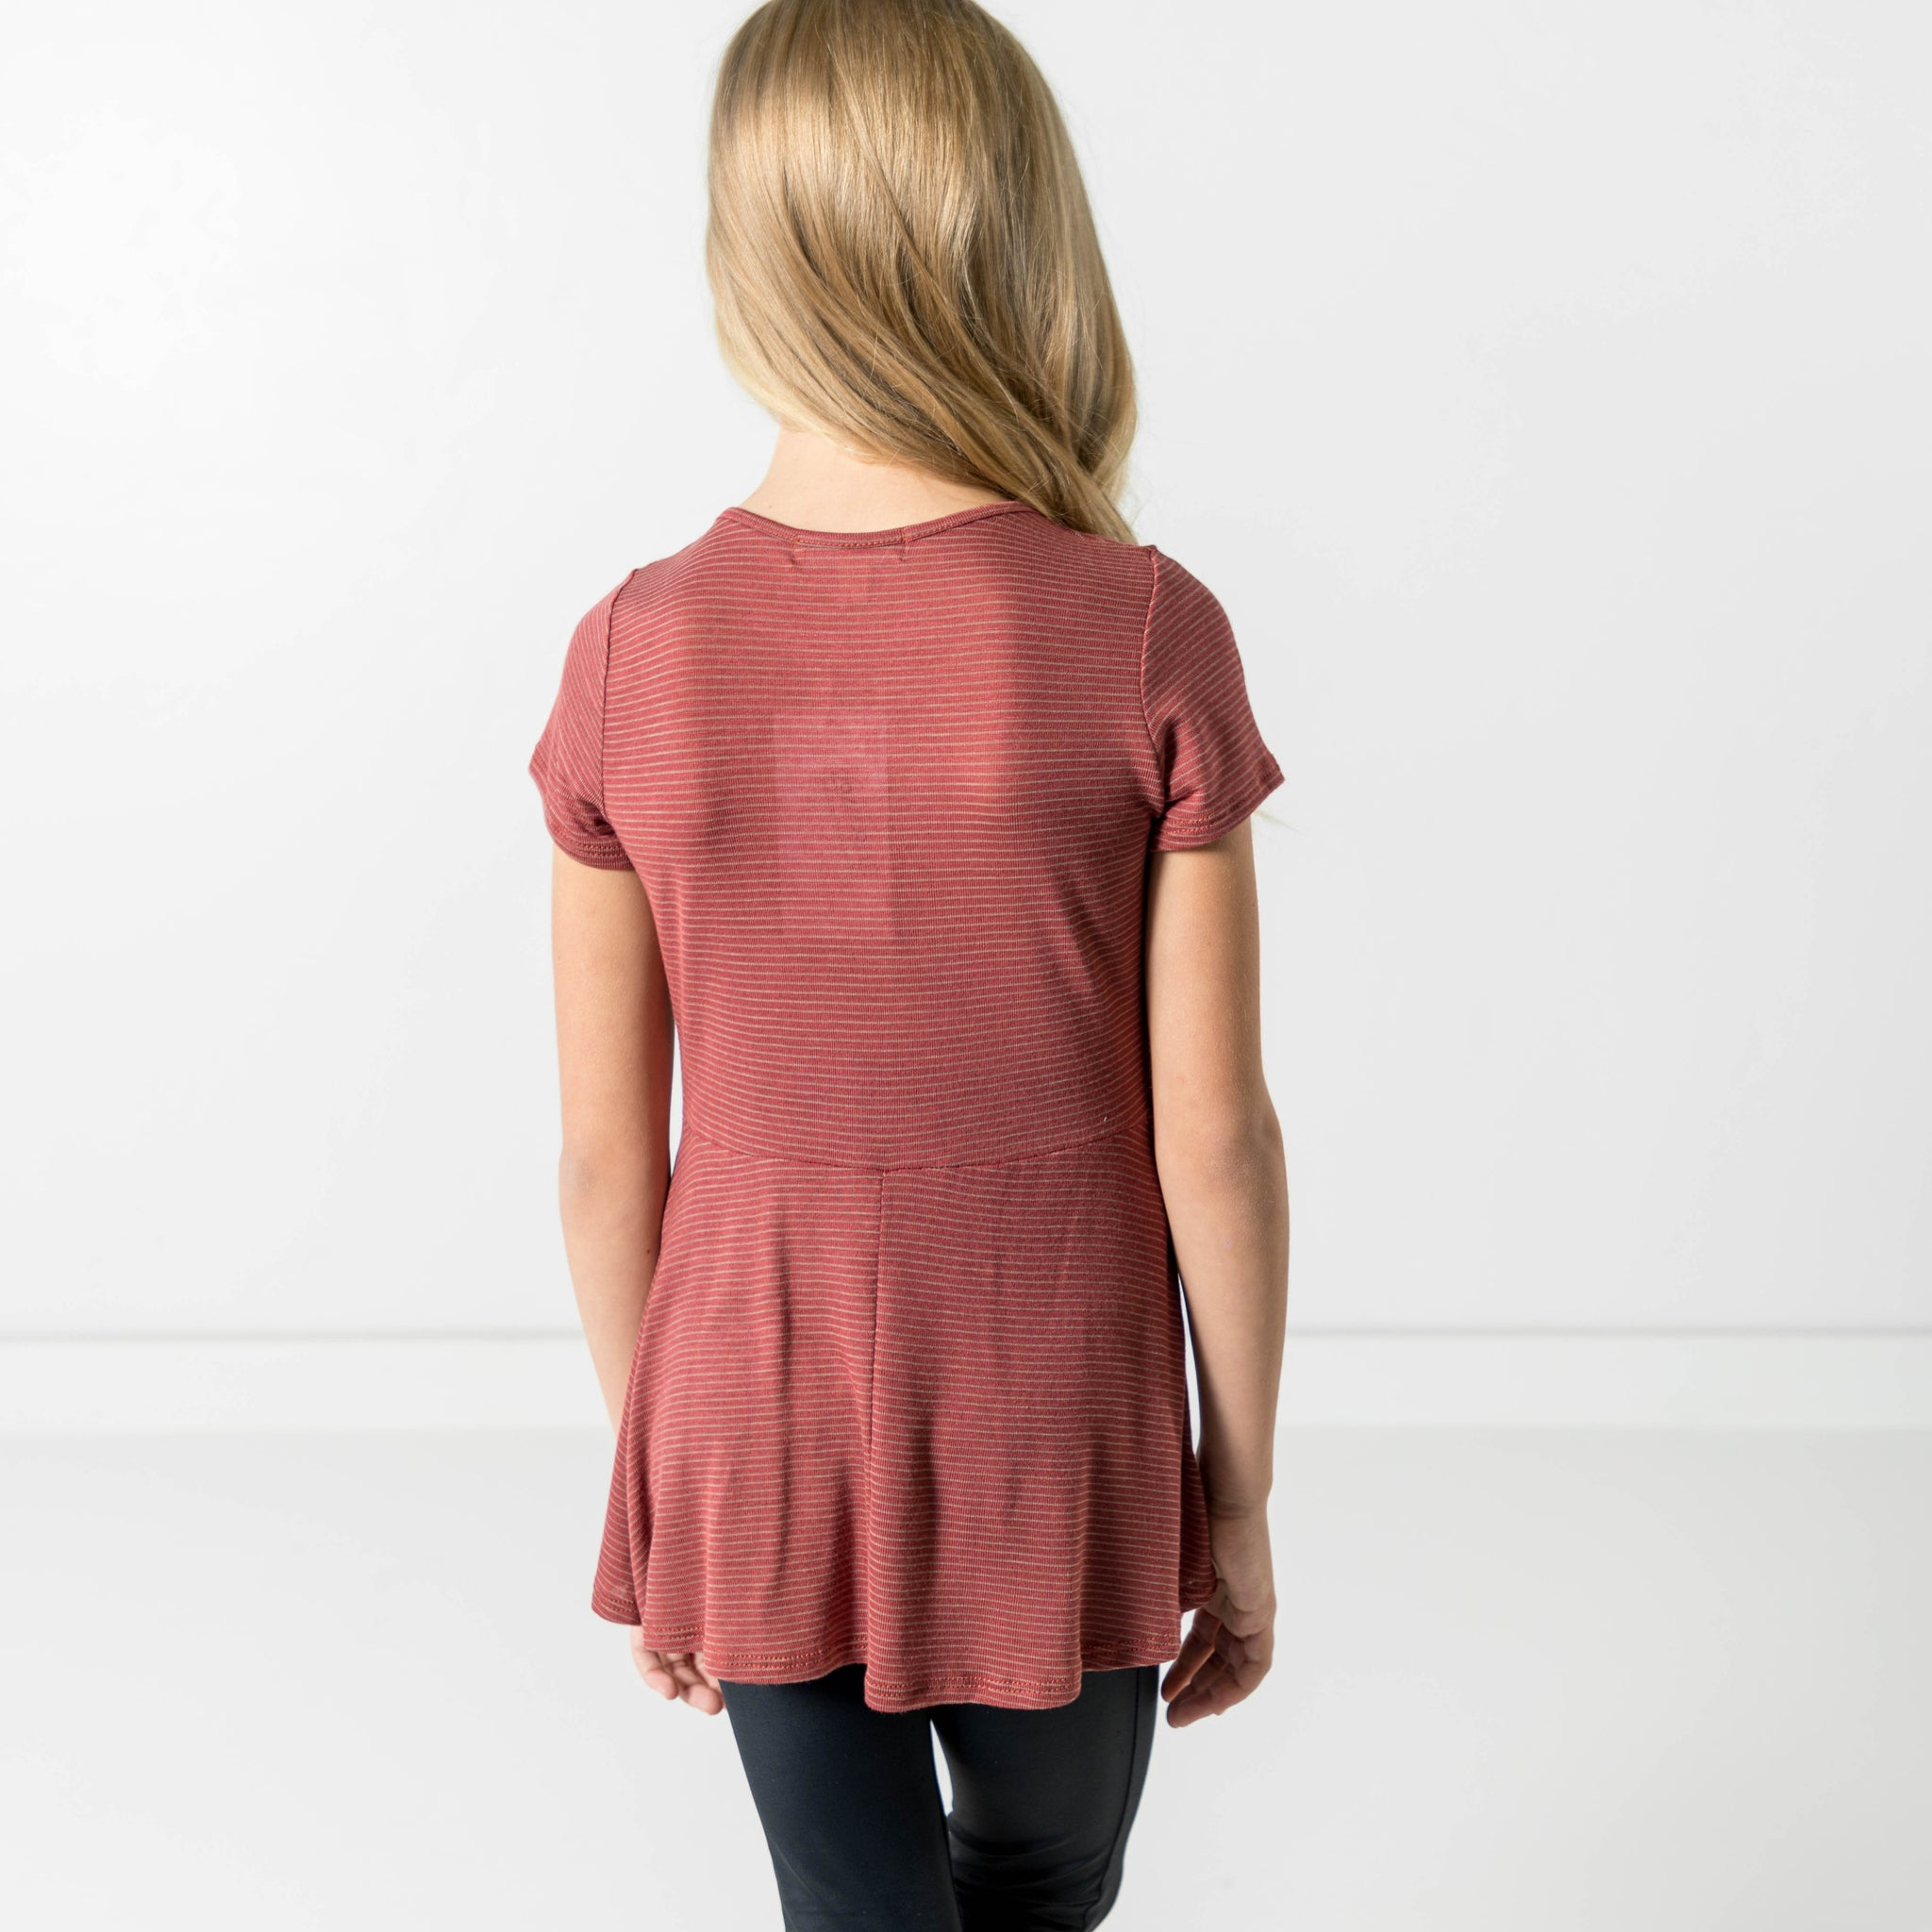 Eliana Baby Doll Top in Brick